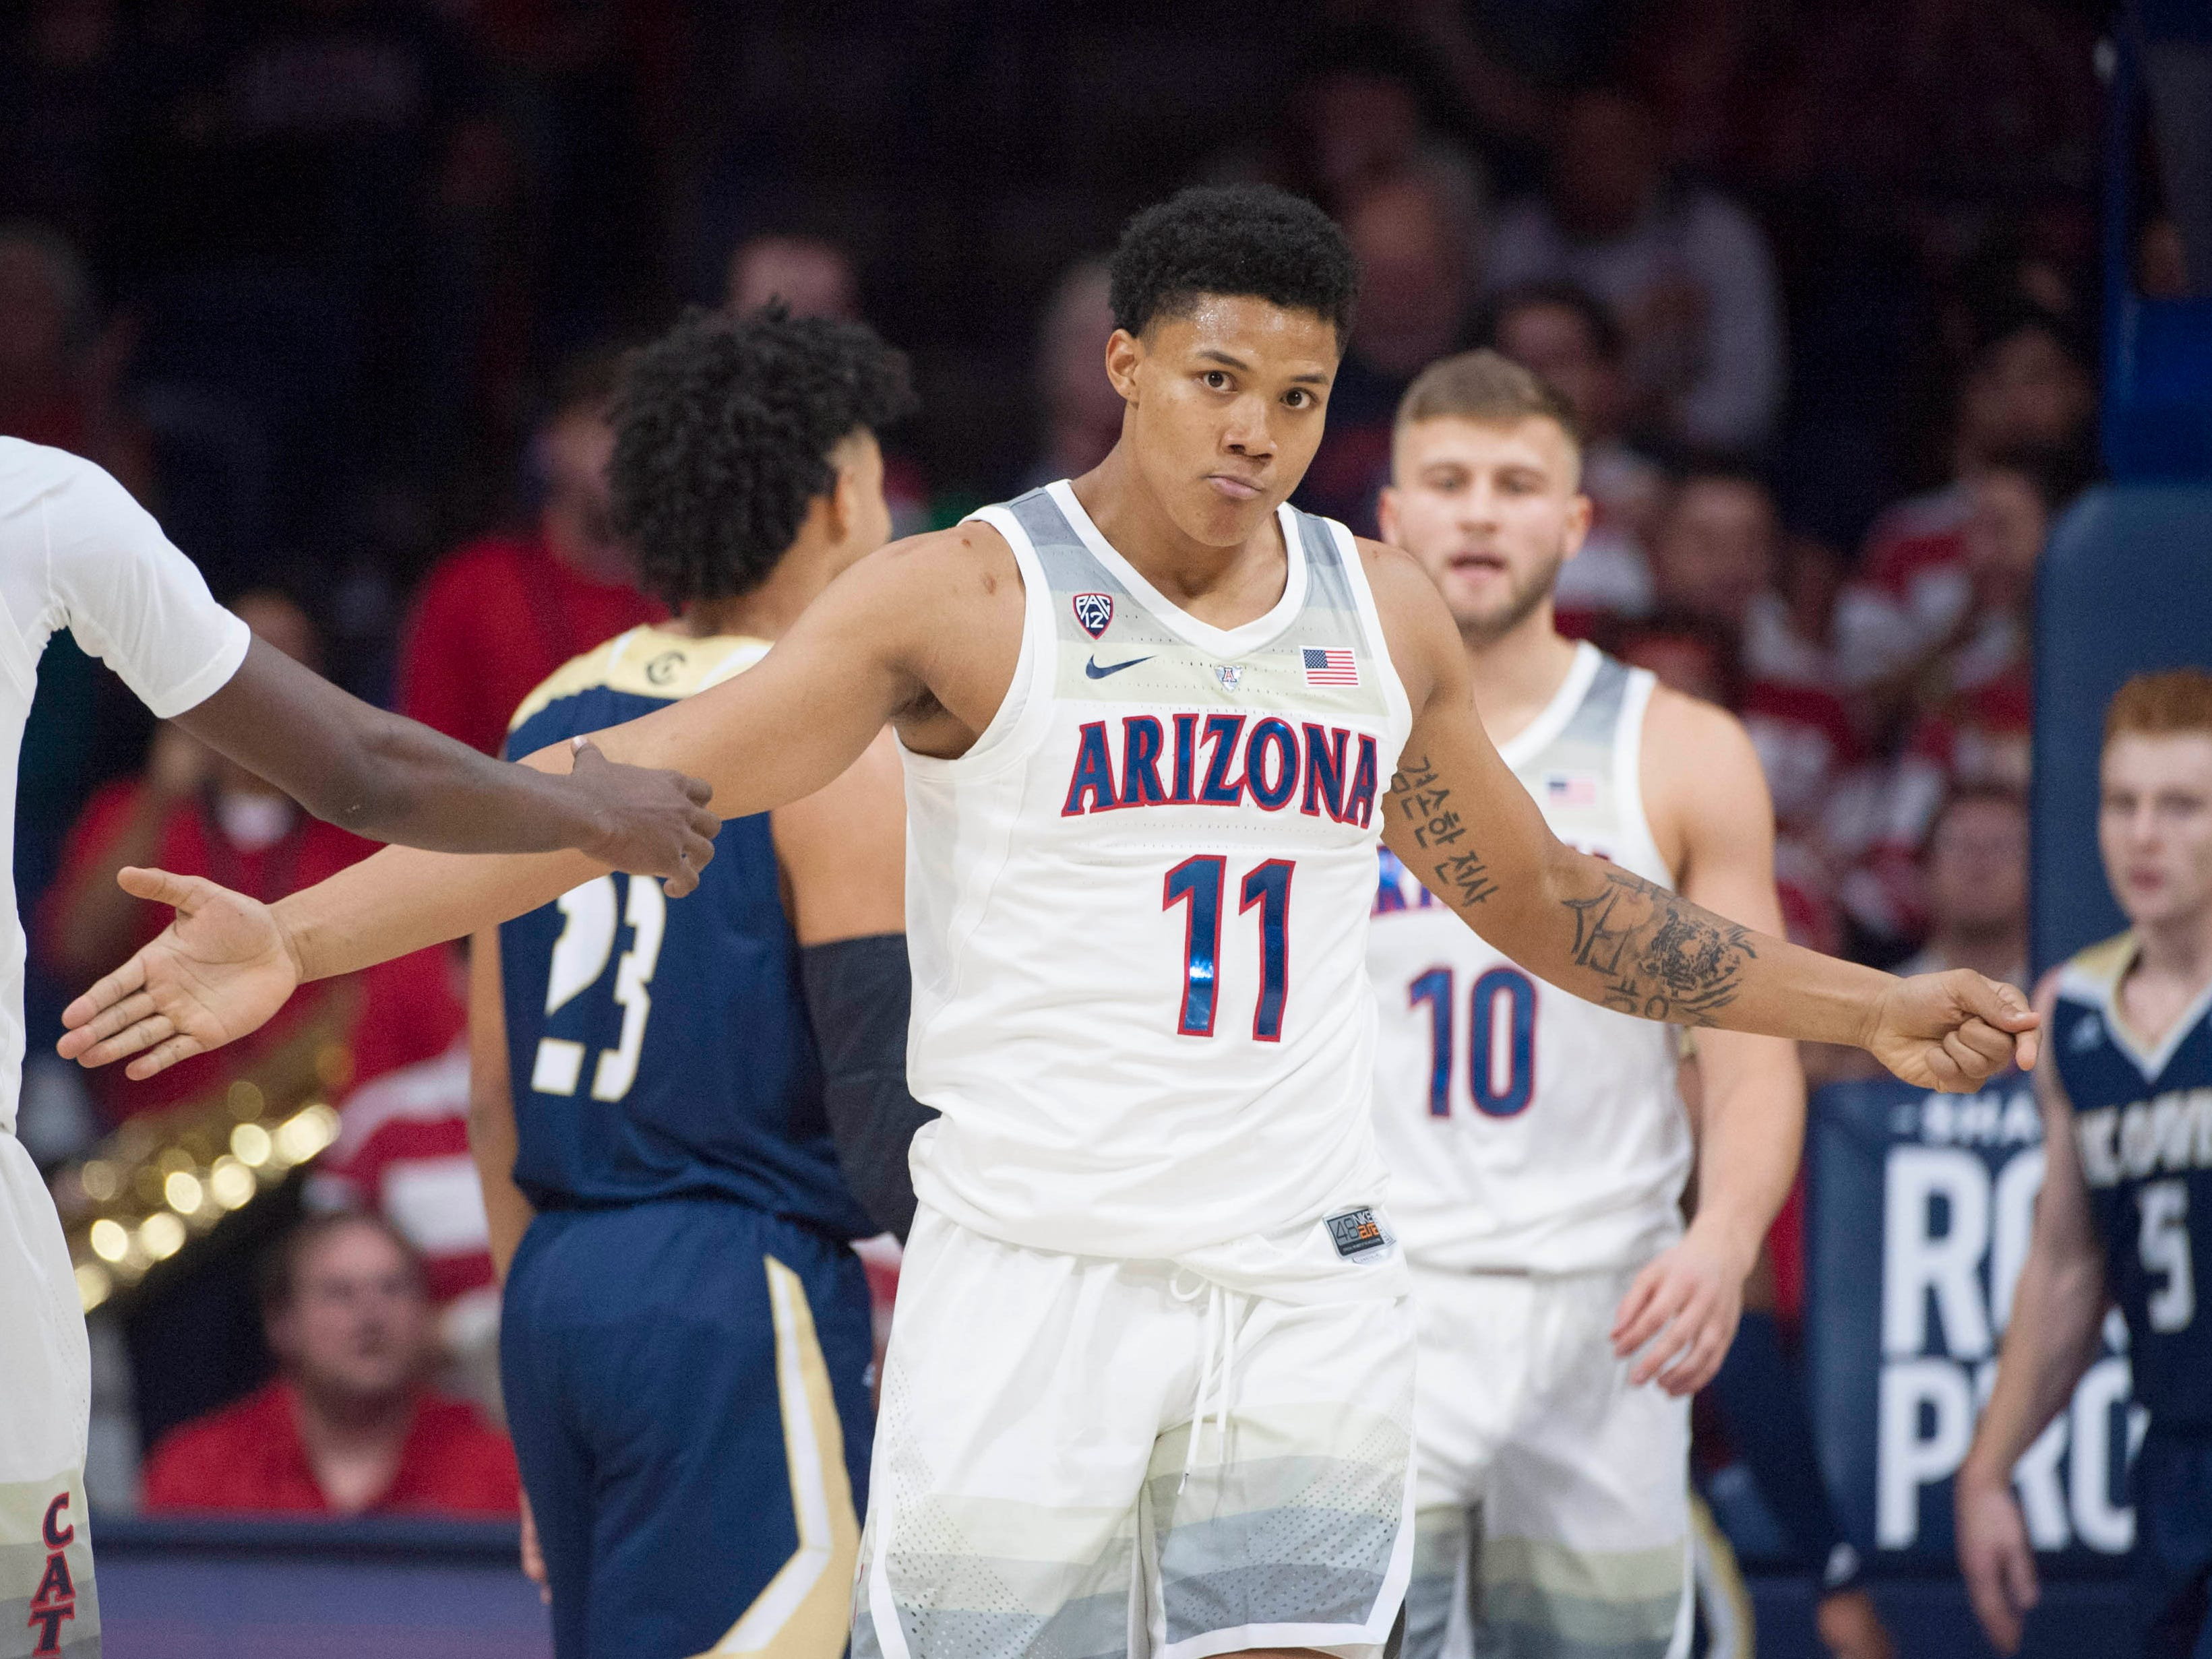 Dec 22, 2018; Tucson, AZ, USA; Arizona Wildcats forward Ira Lee (11) high fives guard Dylan Smith (3) (left) after scoring against the UC Davis Aggies during the first half at McKale Center. Mandatory Credit: Casey Sapio-USA TODAY Sports